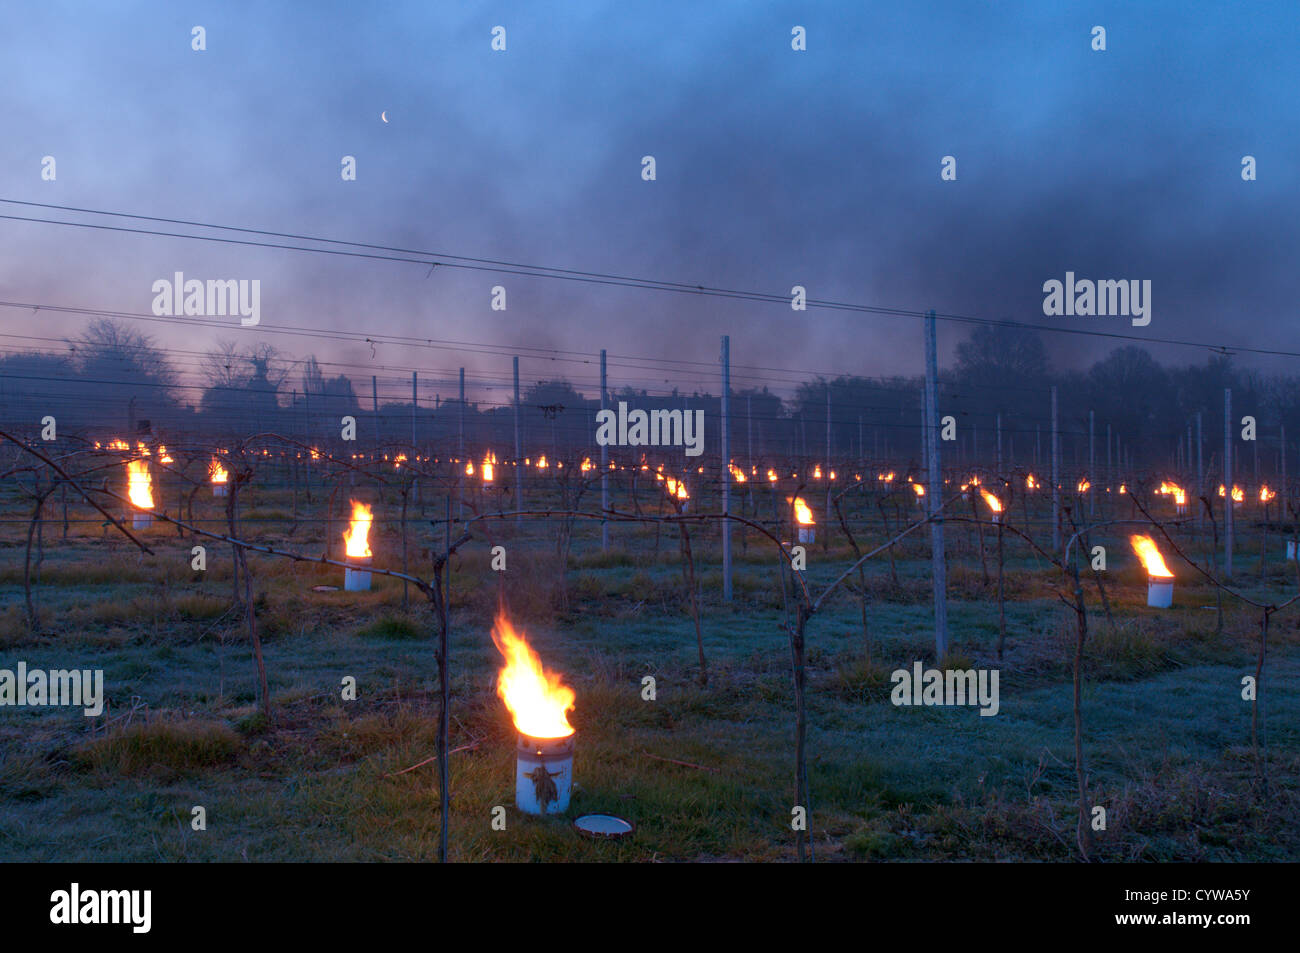 Paraffin burner 'bougies' lit in vineyard in West Sussex, UK to protect grapes from frost. Dawn. April. - Stock Image